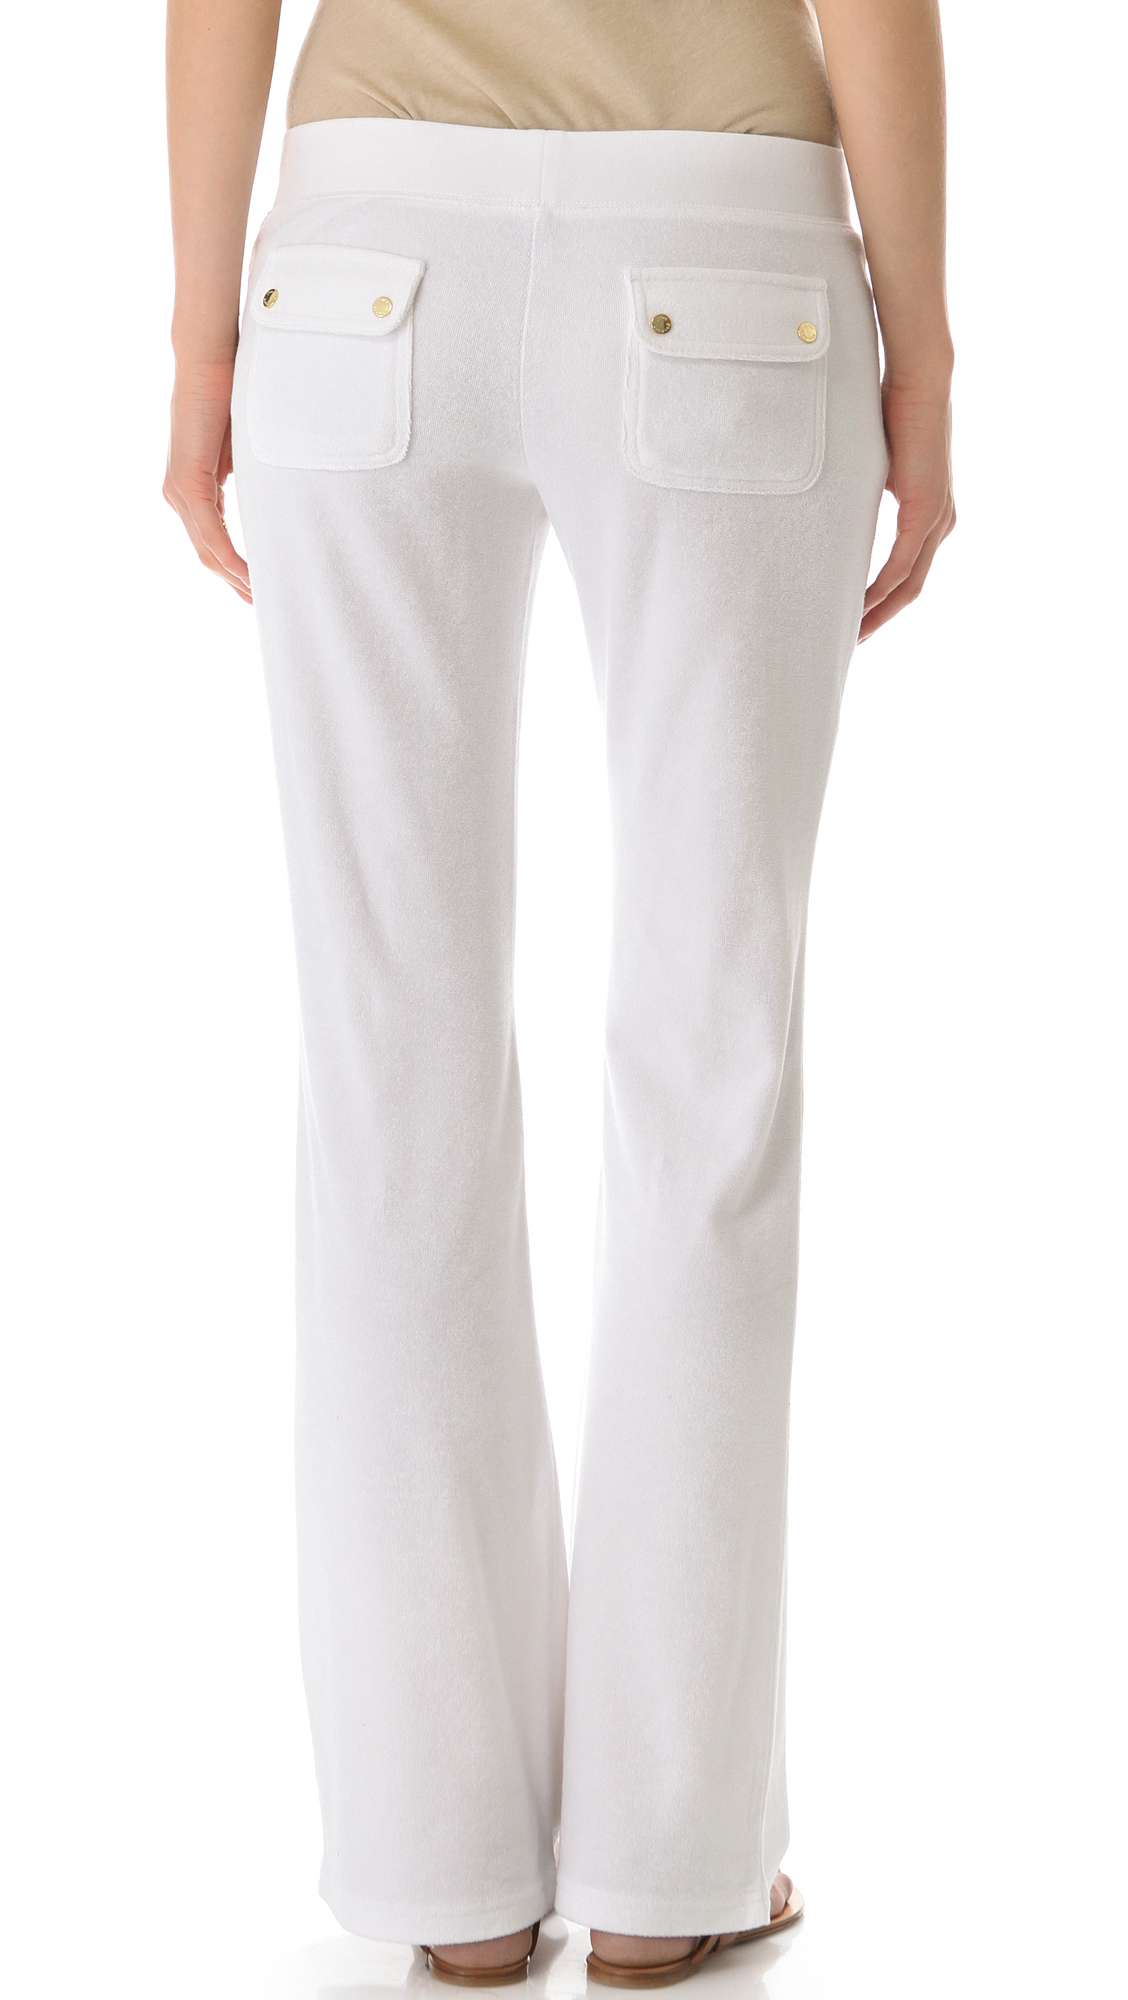 Lyst - Juicy Couture Boot Cut Pants with Snap Pockets in White 73c3d982f5b2